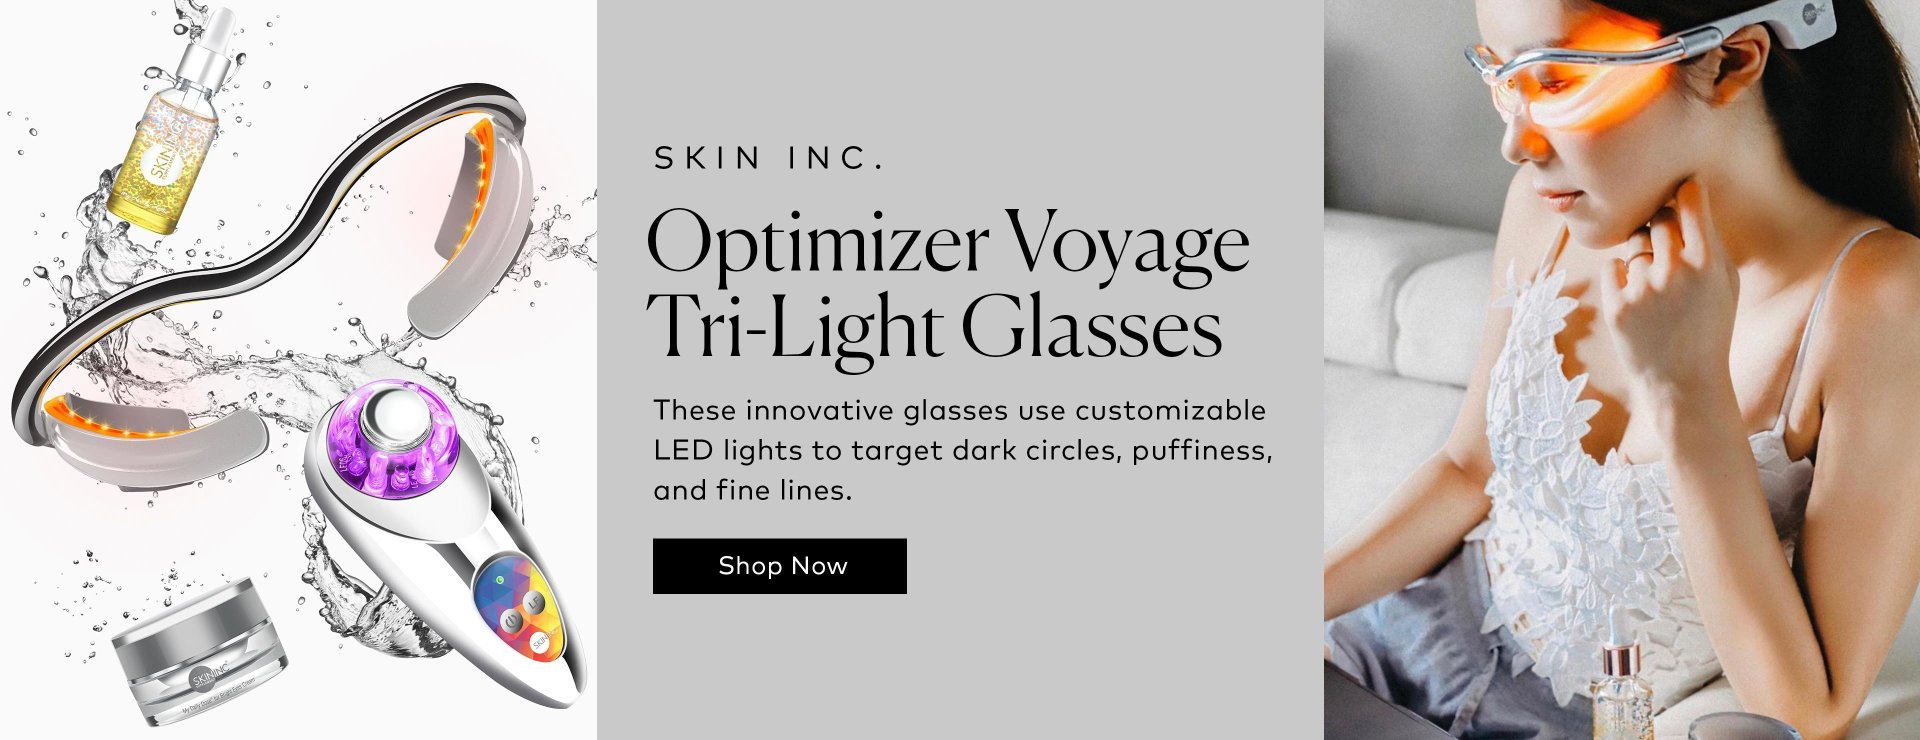 Shop Skin Inc's revolutionary glasses, using LED technology to target dullness, puffiness, and visible fatigue around the eye area.